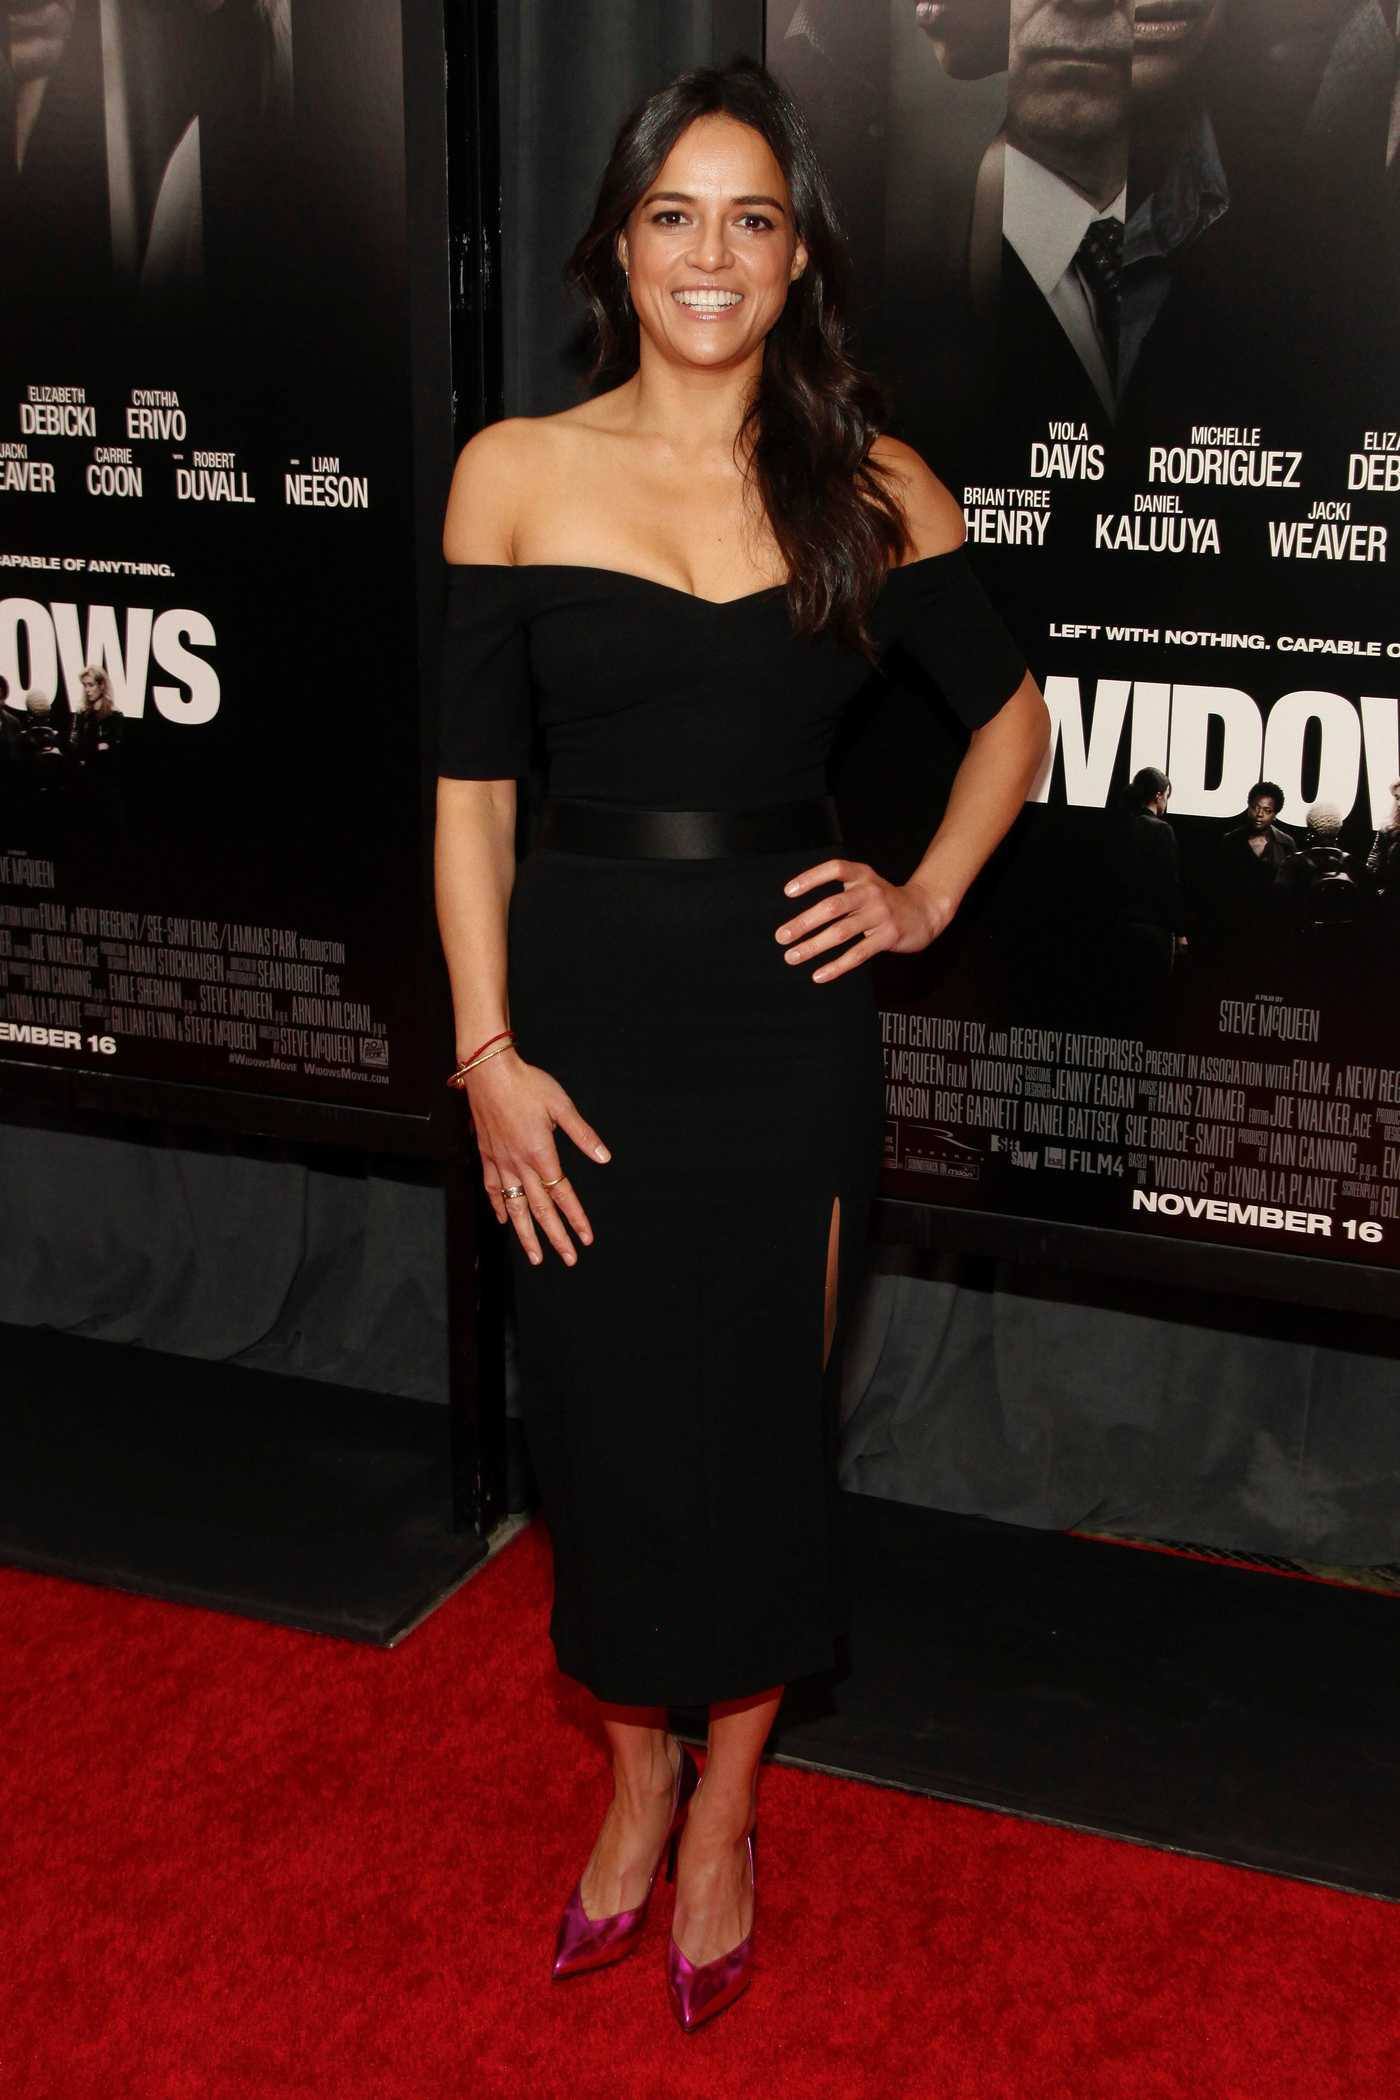 Michelle Rodriguez Attends the Widows Special Screening in New York 11/11/2018